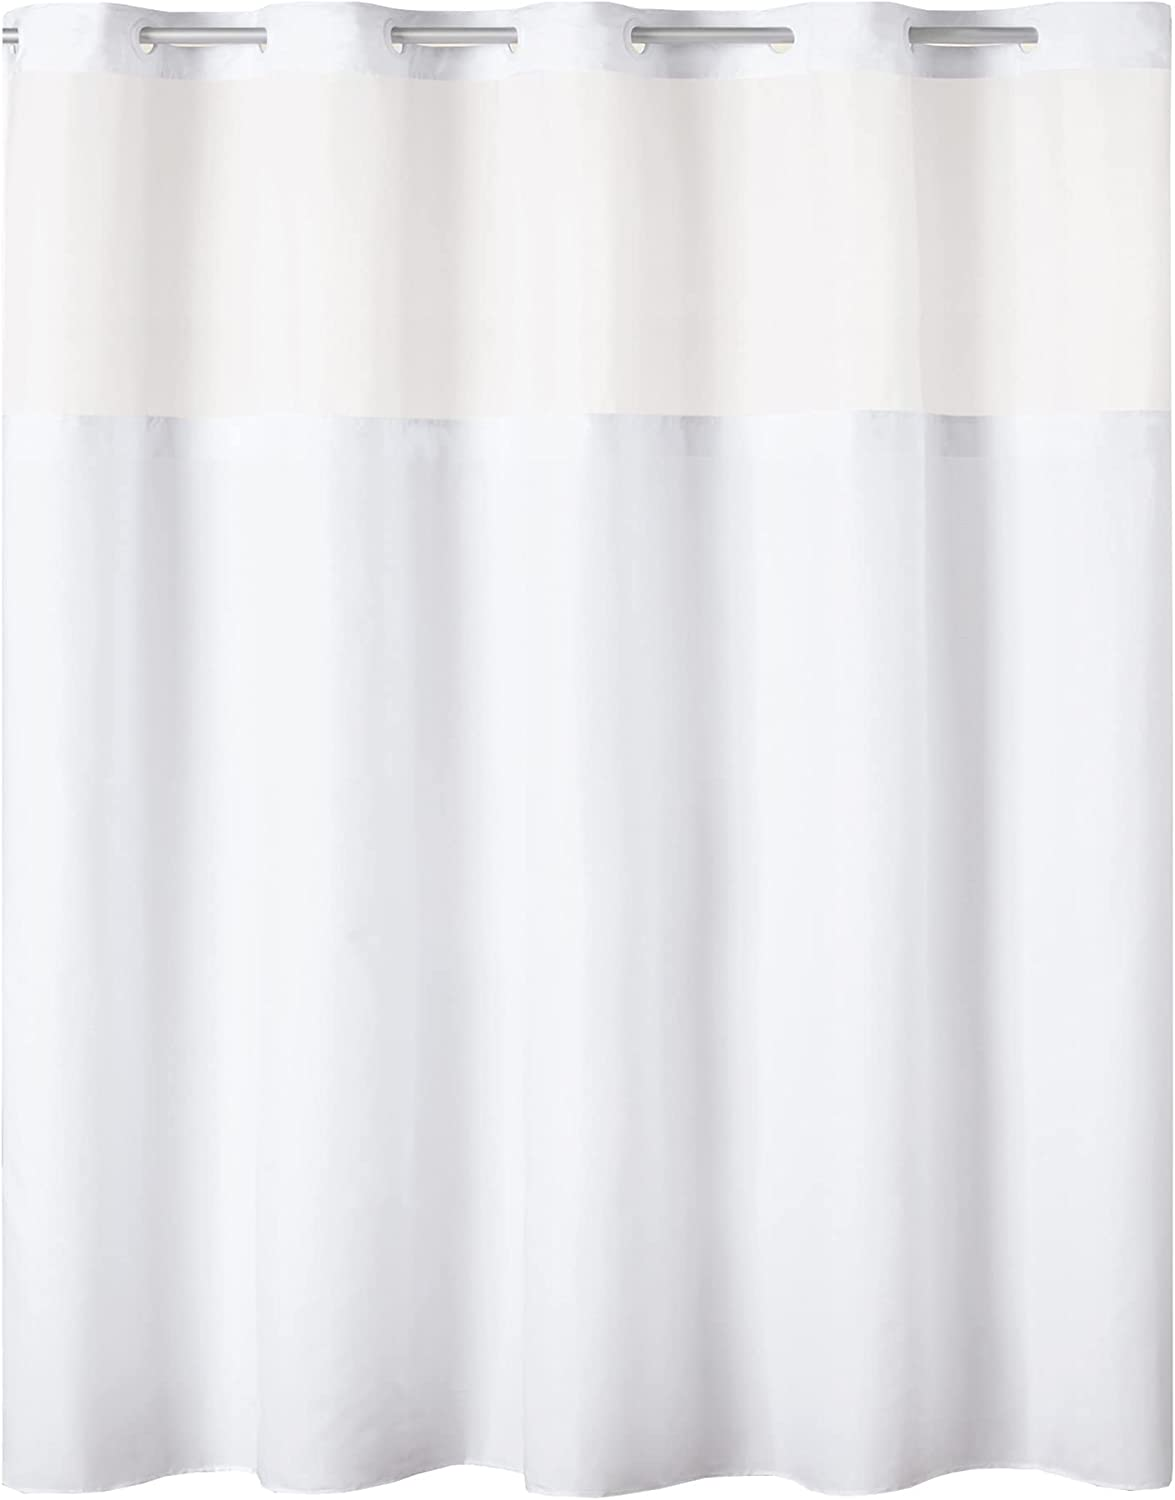 Hookless Antigo Shower Curtain with Fabric 71 Luxury goods 74 X White Liner Cheap mail order shopping